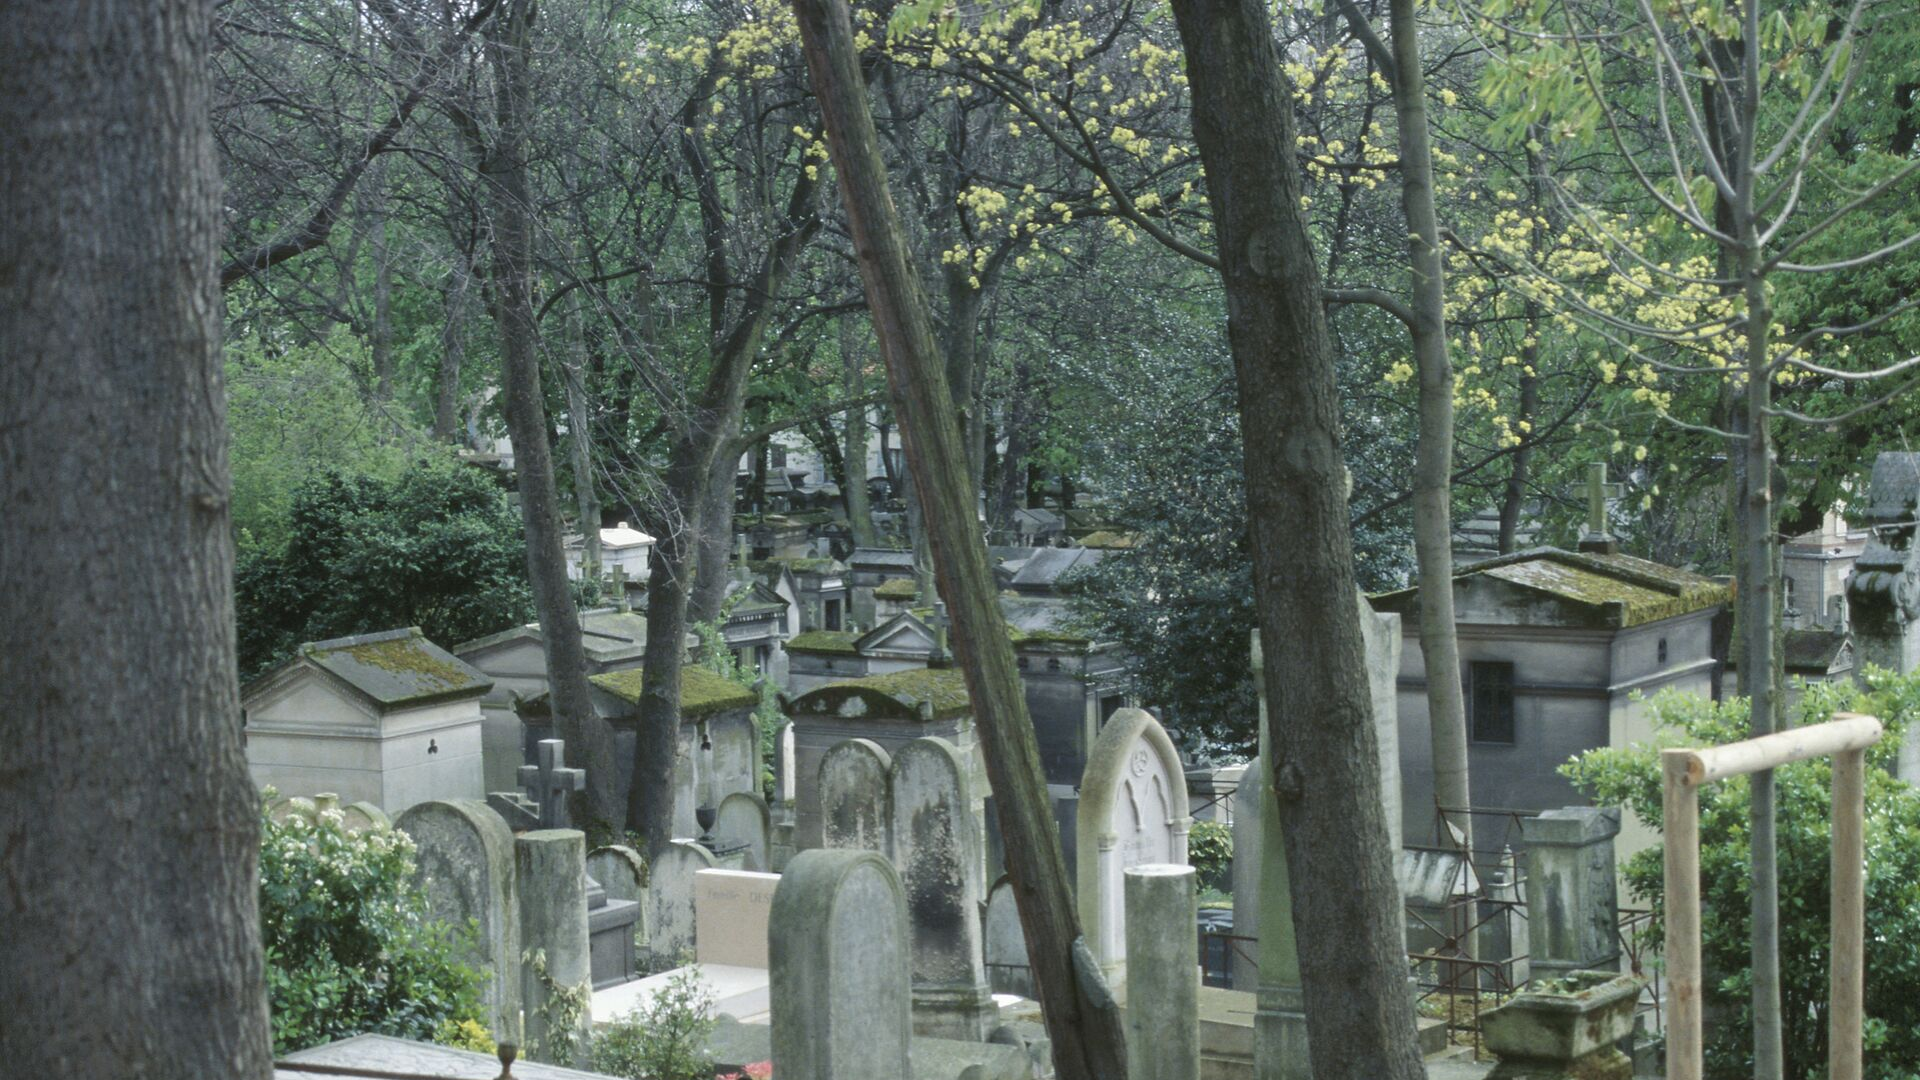 Photo of a cemetery crowded with headstones